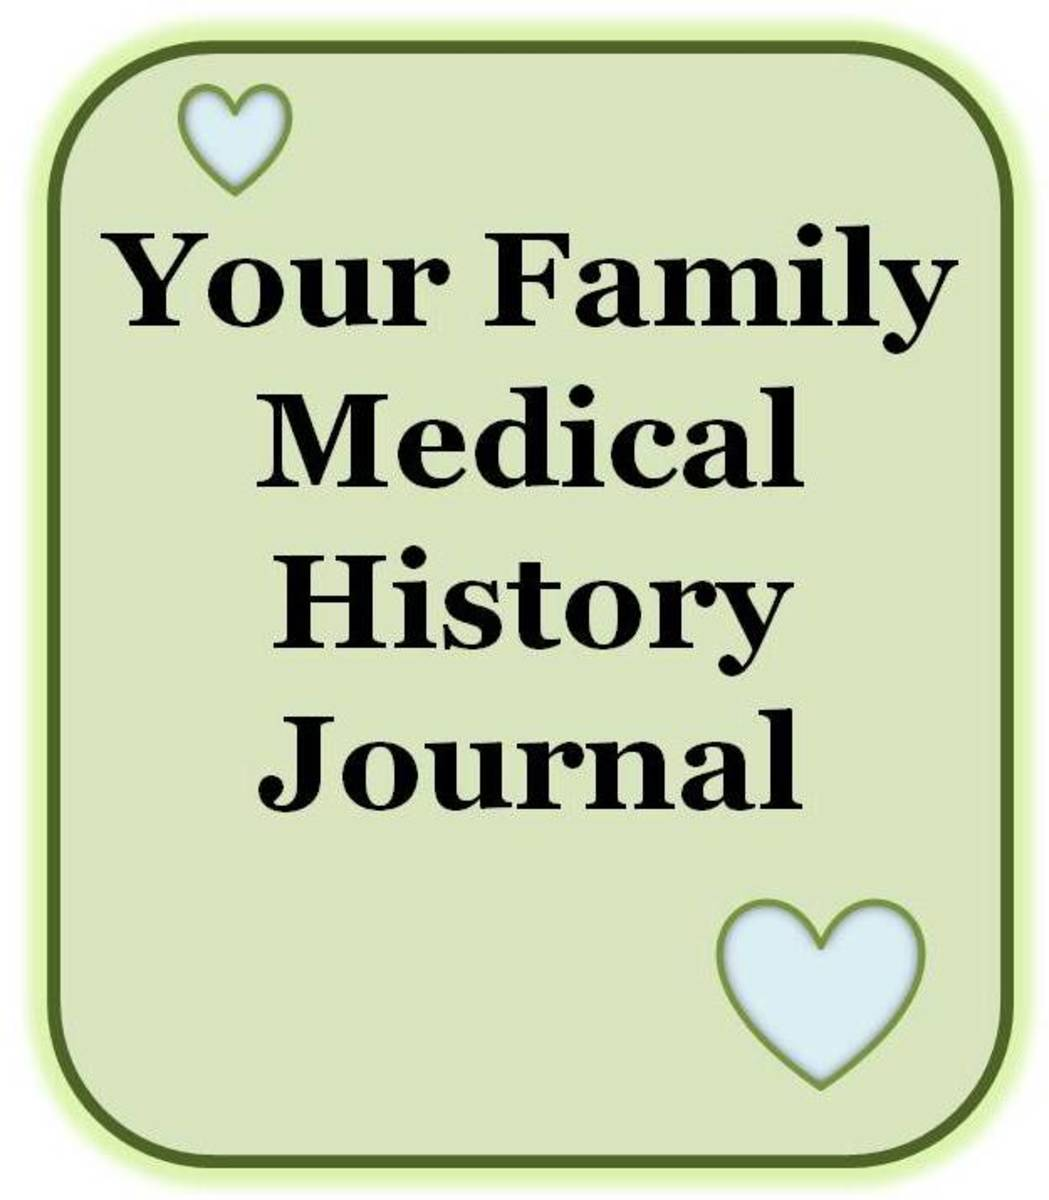 Keeping a Medical History Journal for You and Your Family